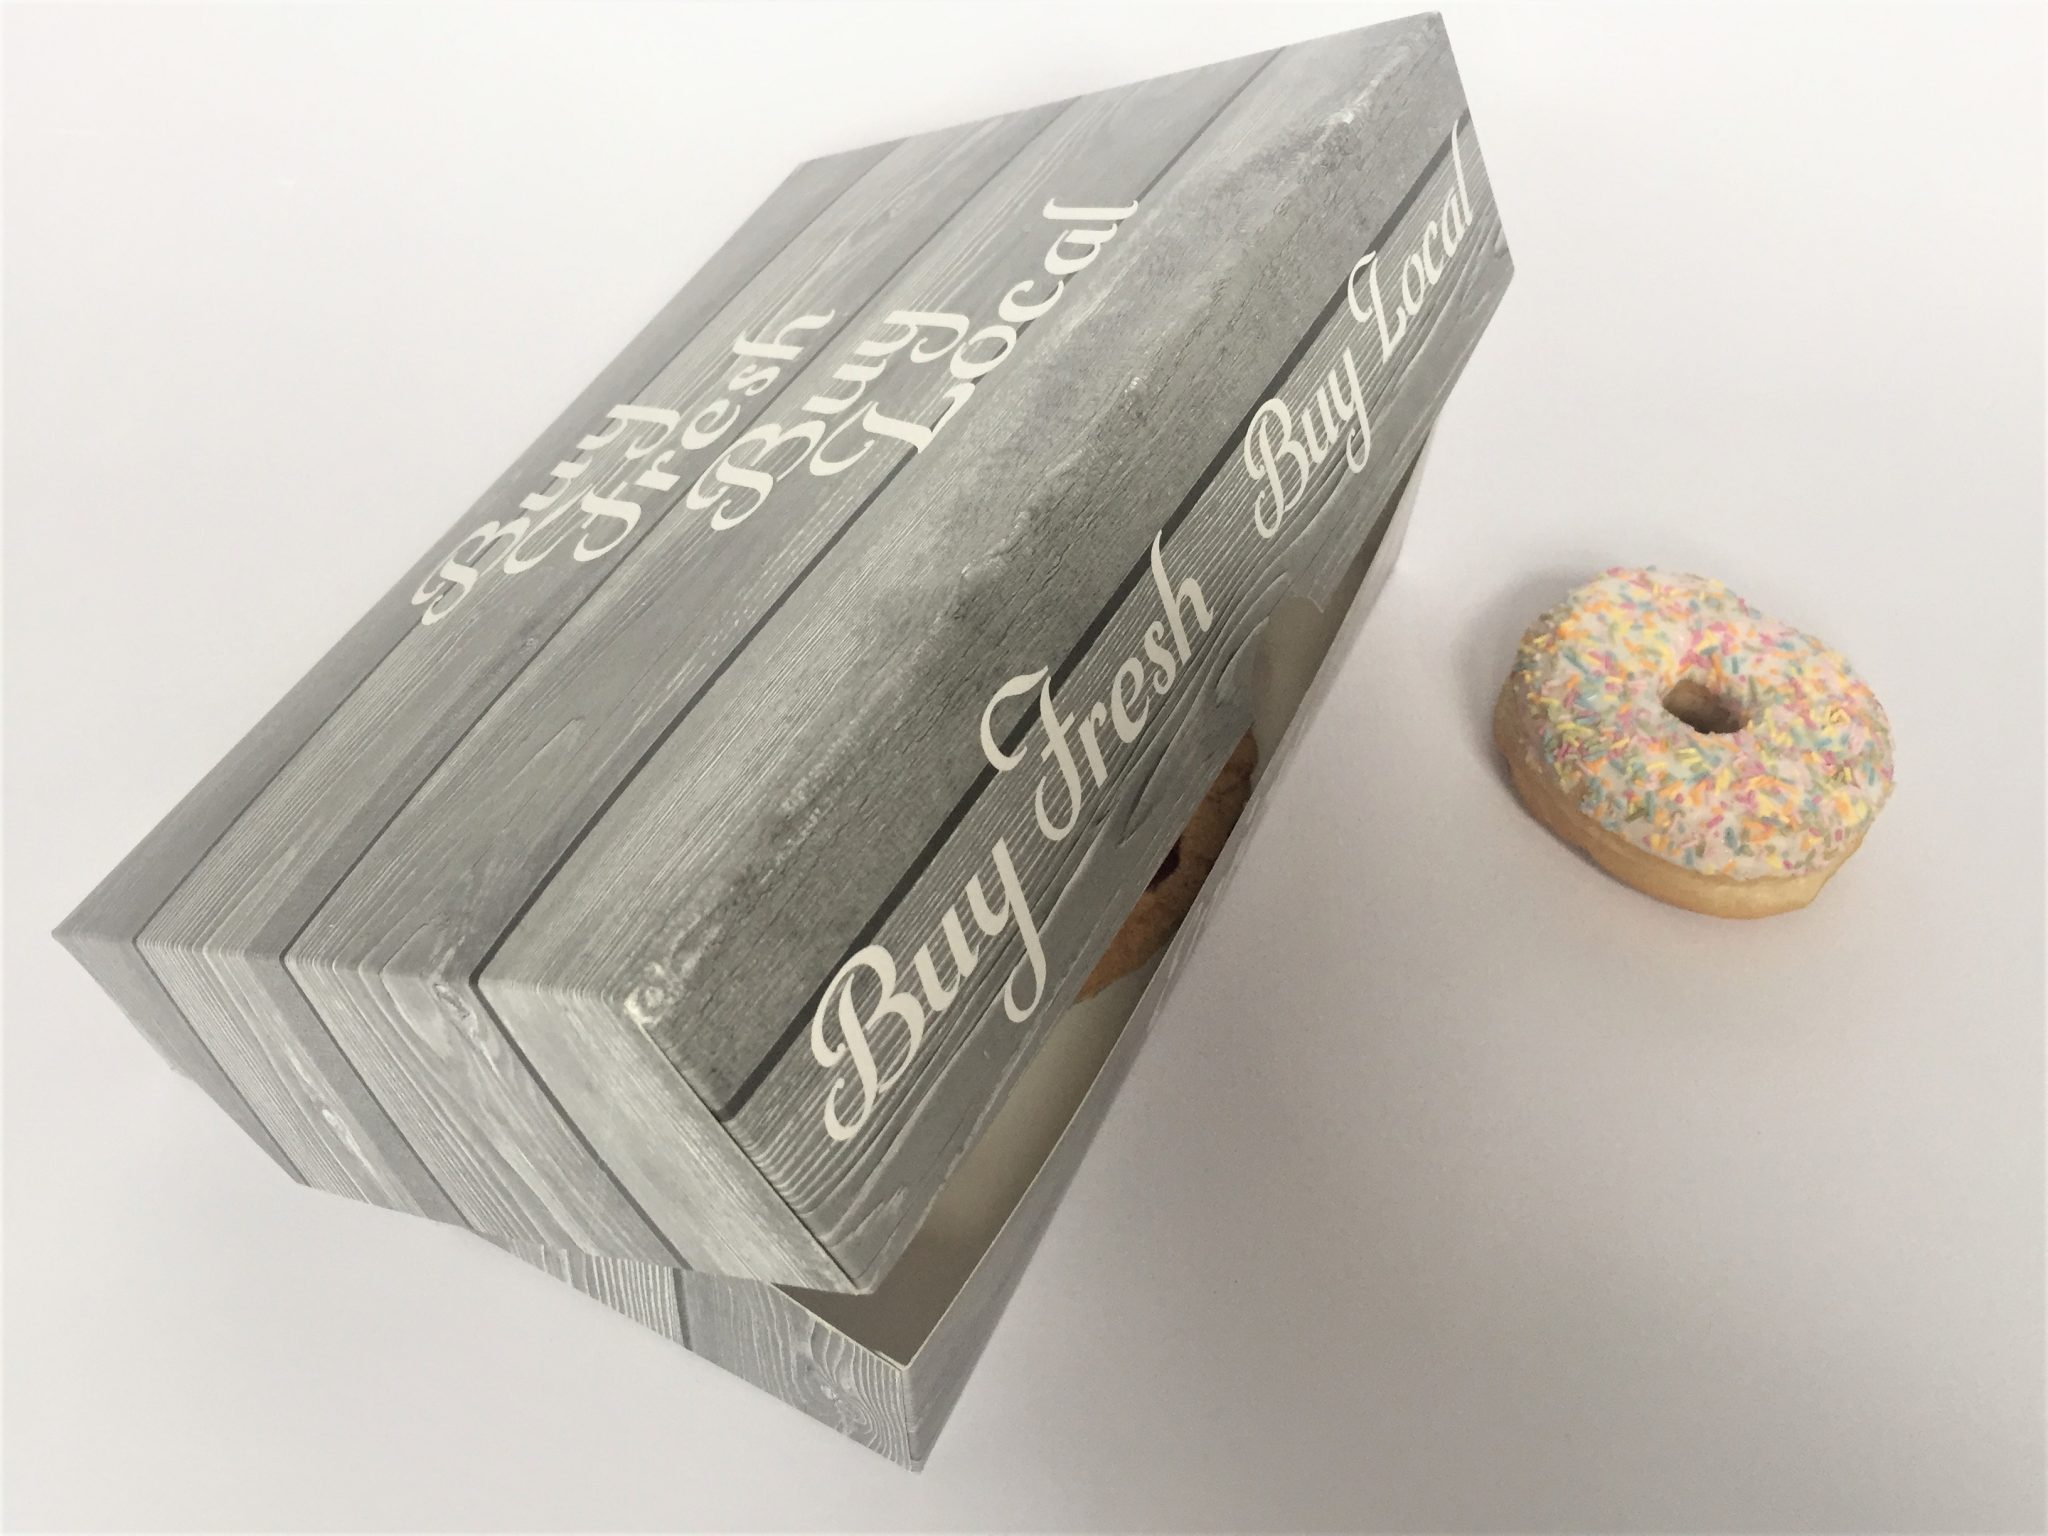 "Home Grown Range ""Buy Fresh Buy Local"" 6 Pack Donut Box"